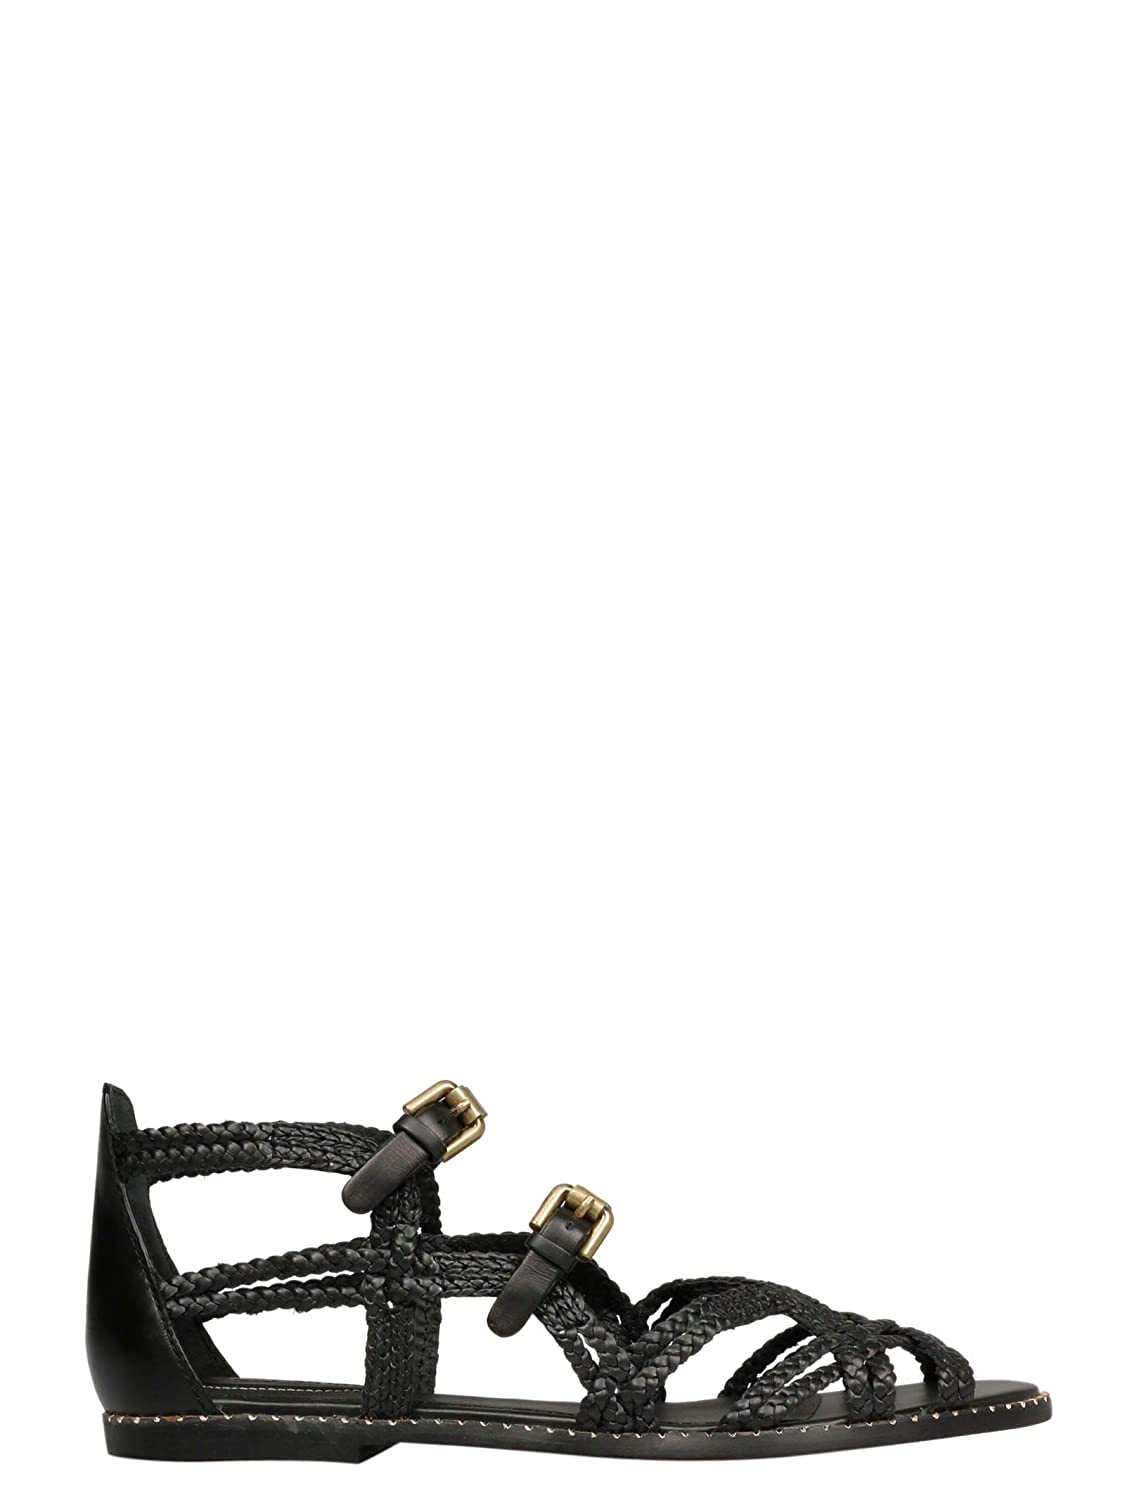 - SEE BY CHLOÉ Women's SB32090A09110999 Black Leather Sandals